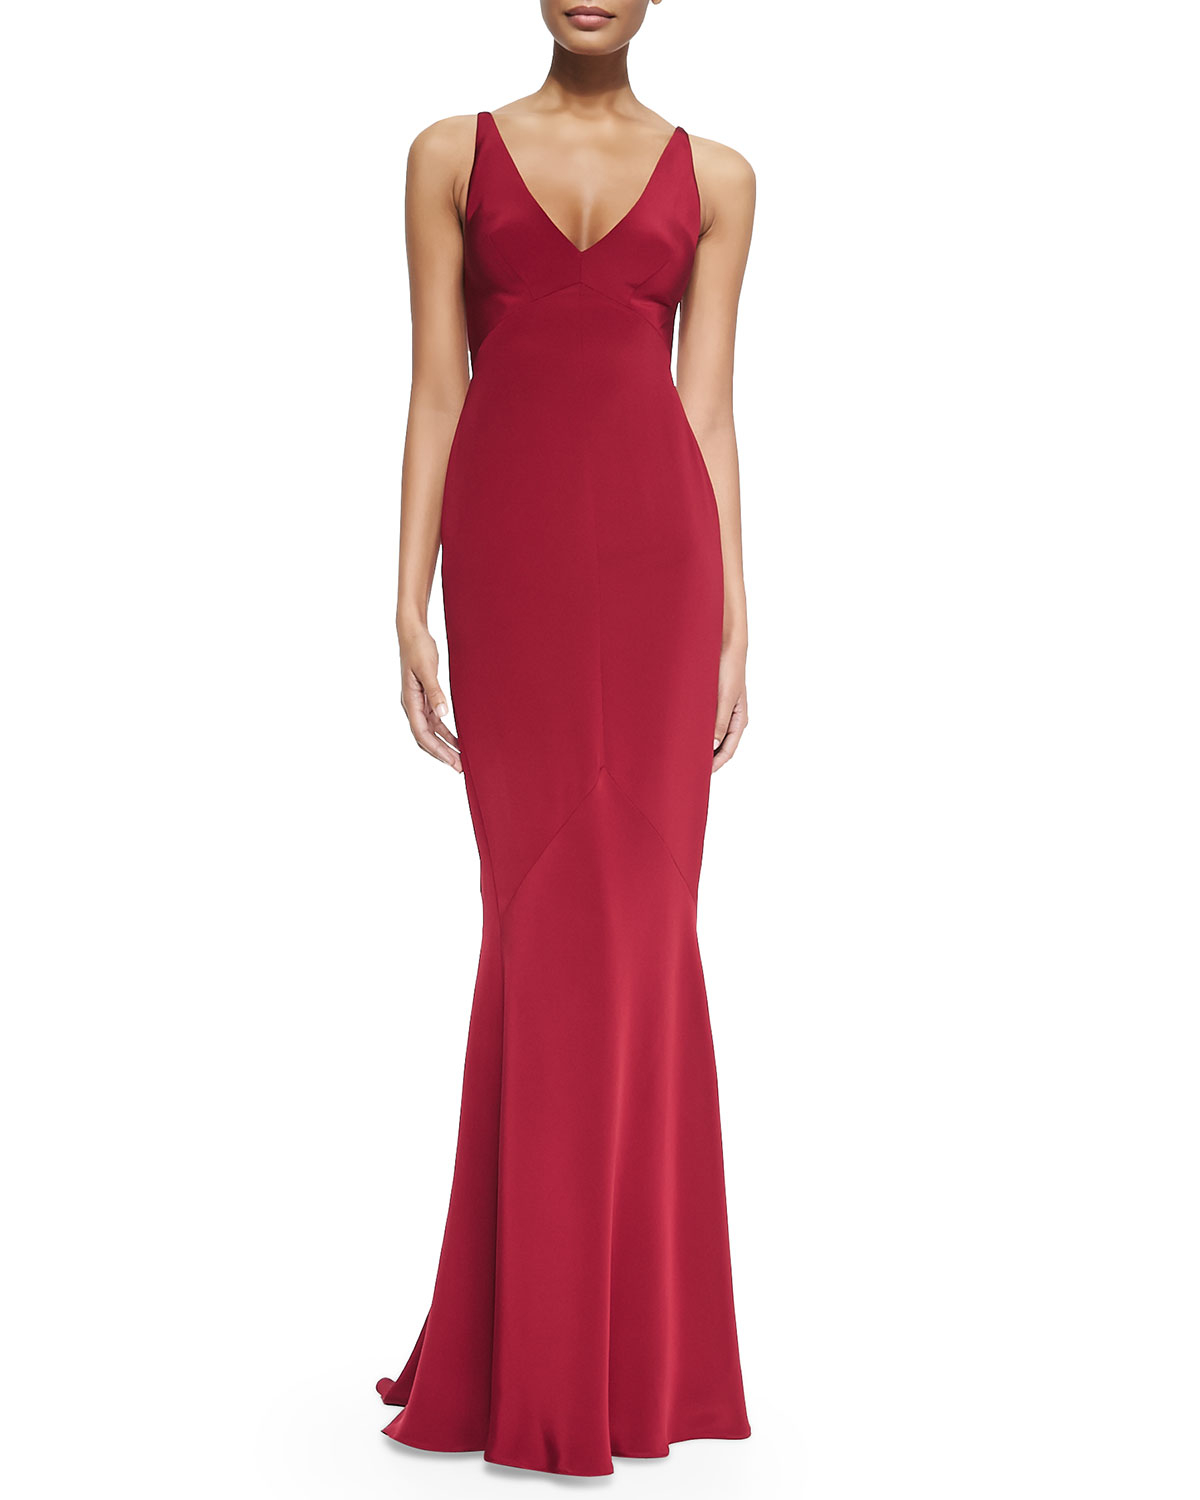 Lyst - Narciso Rodriguez Sleeveless Bias-Cut Mermaid Gown in Red